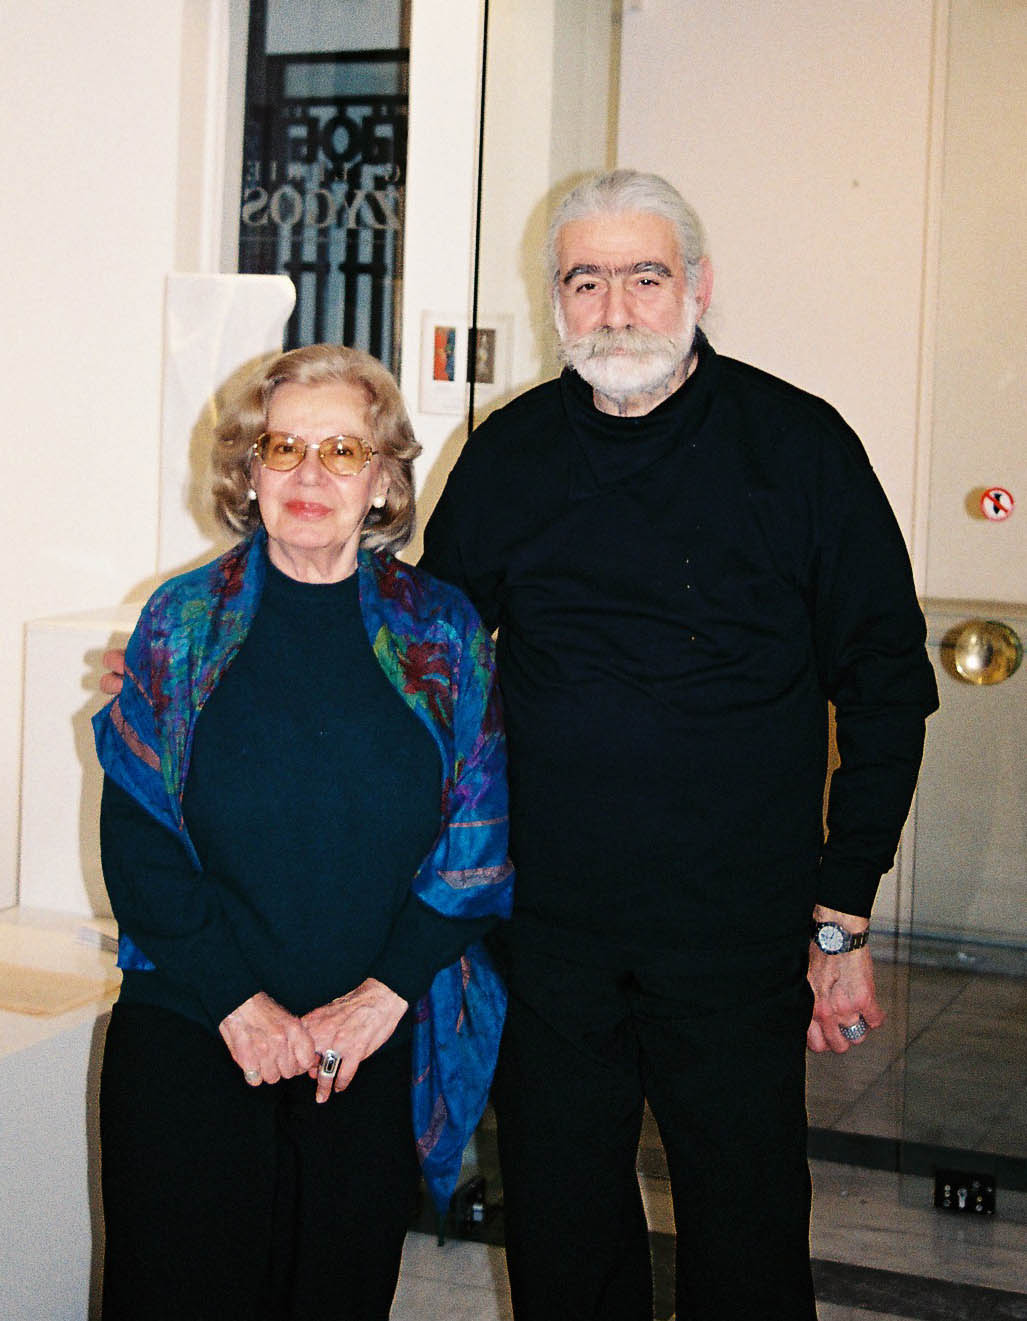 Catherine Frantzeskakis, co-founder of Galerie Zygos, with artist Carlos Cambelopoulos at Galerie Zygos, Nikis Street, 2003.